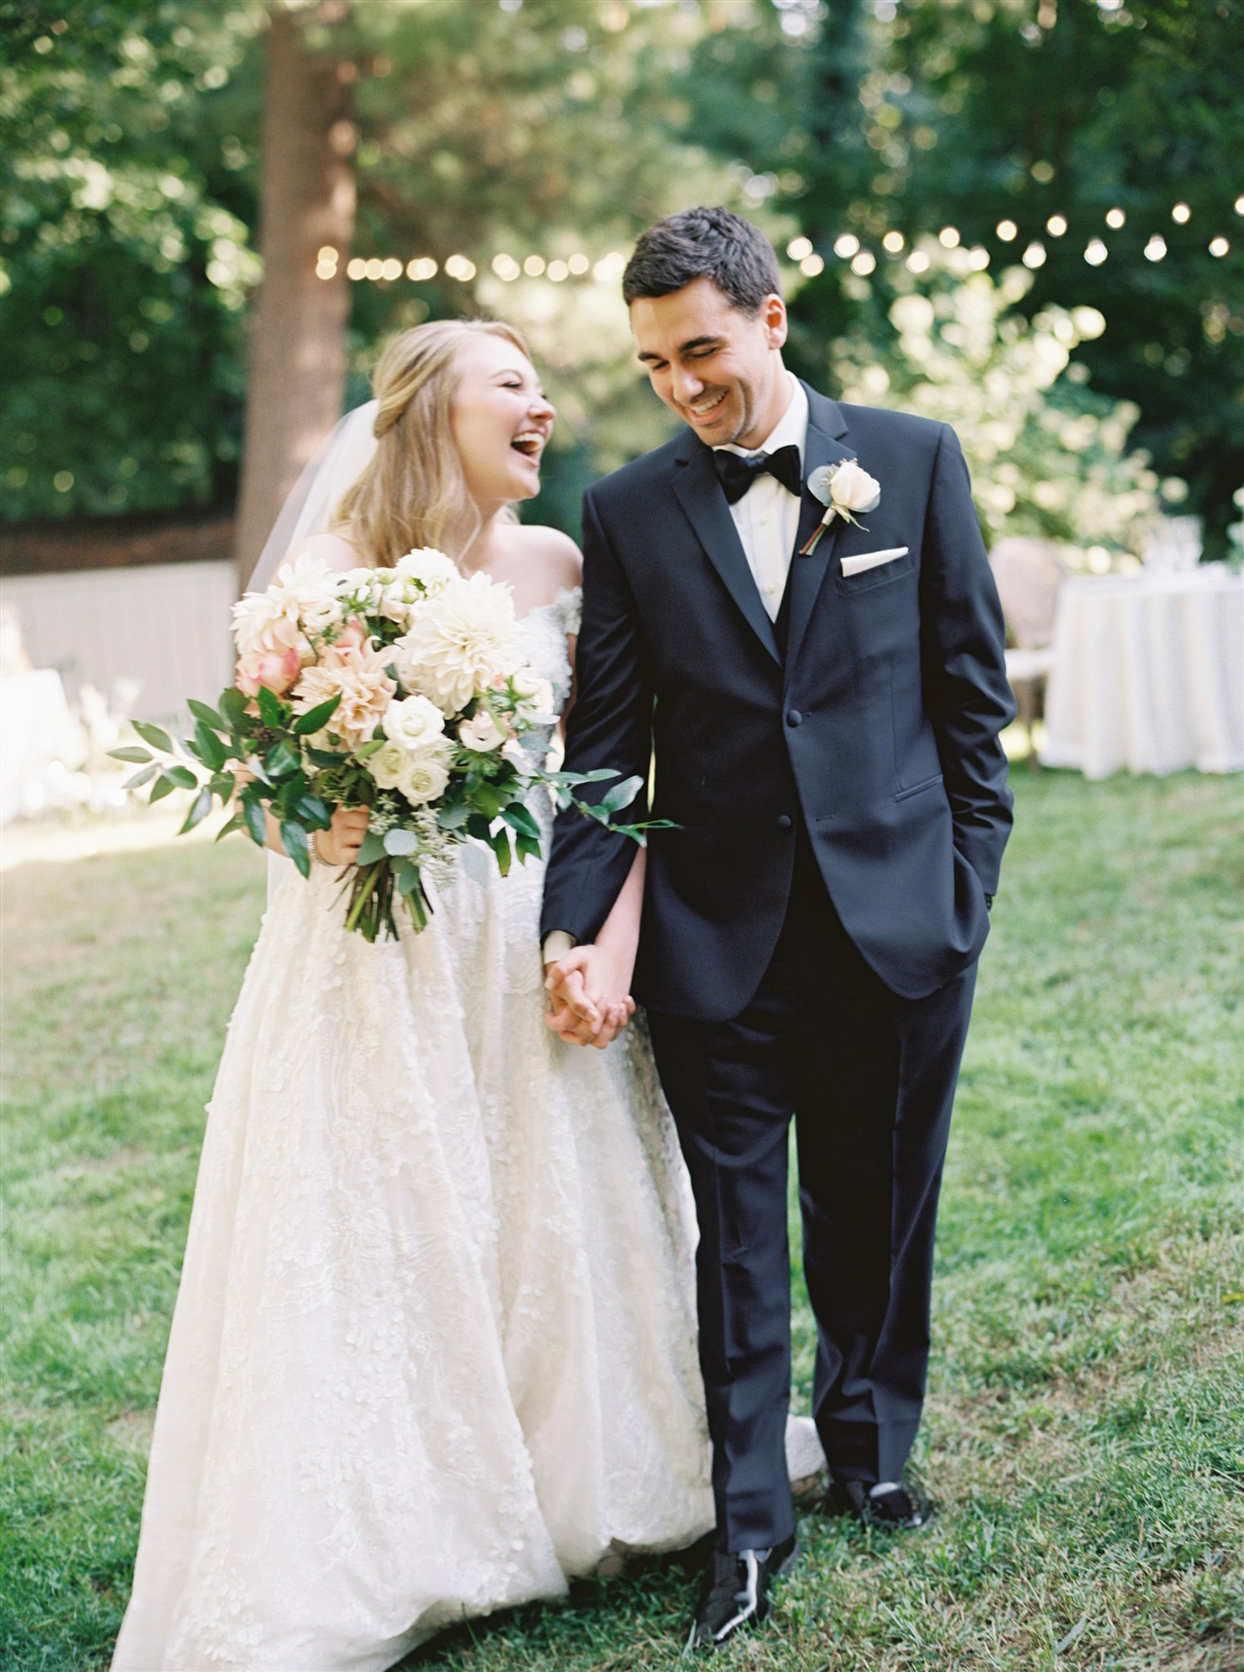 Bride and groom laughing while holding hands